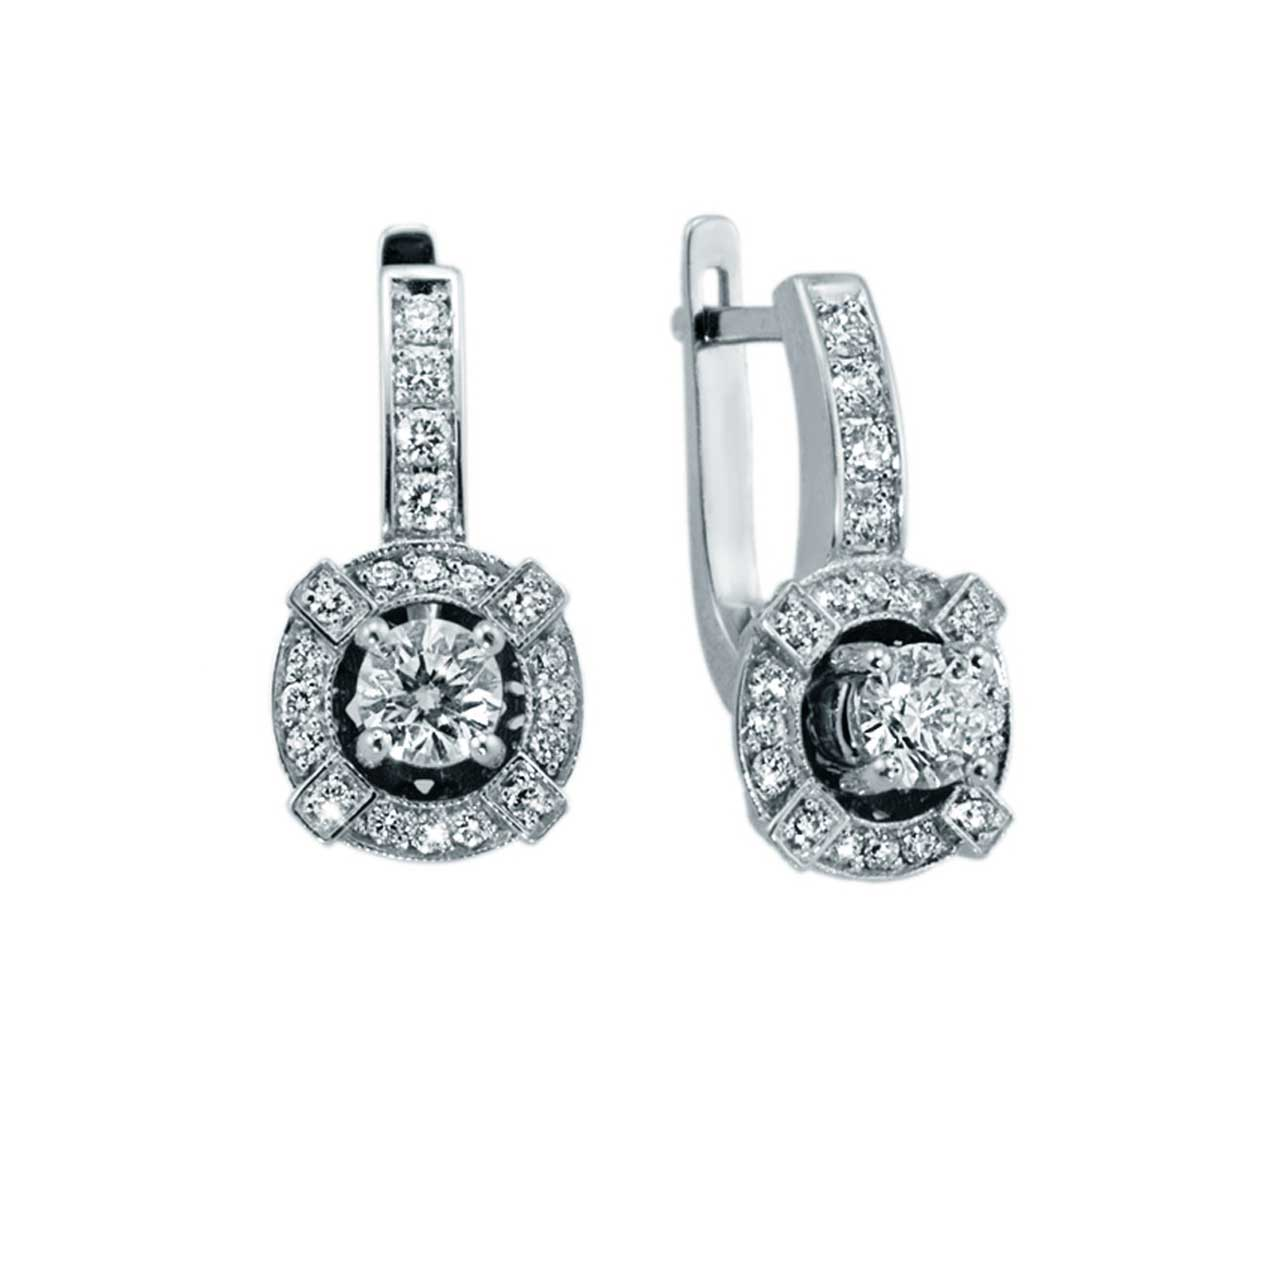 Certified Diamond Earrings